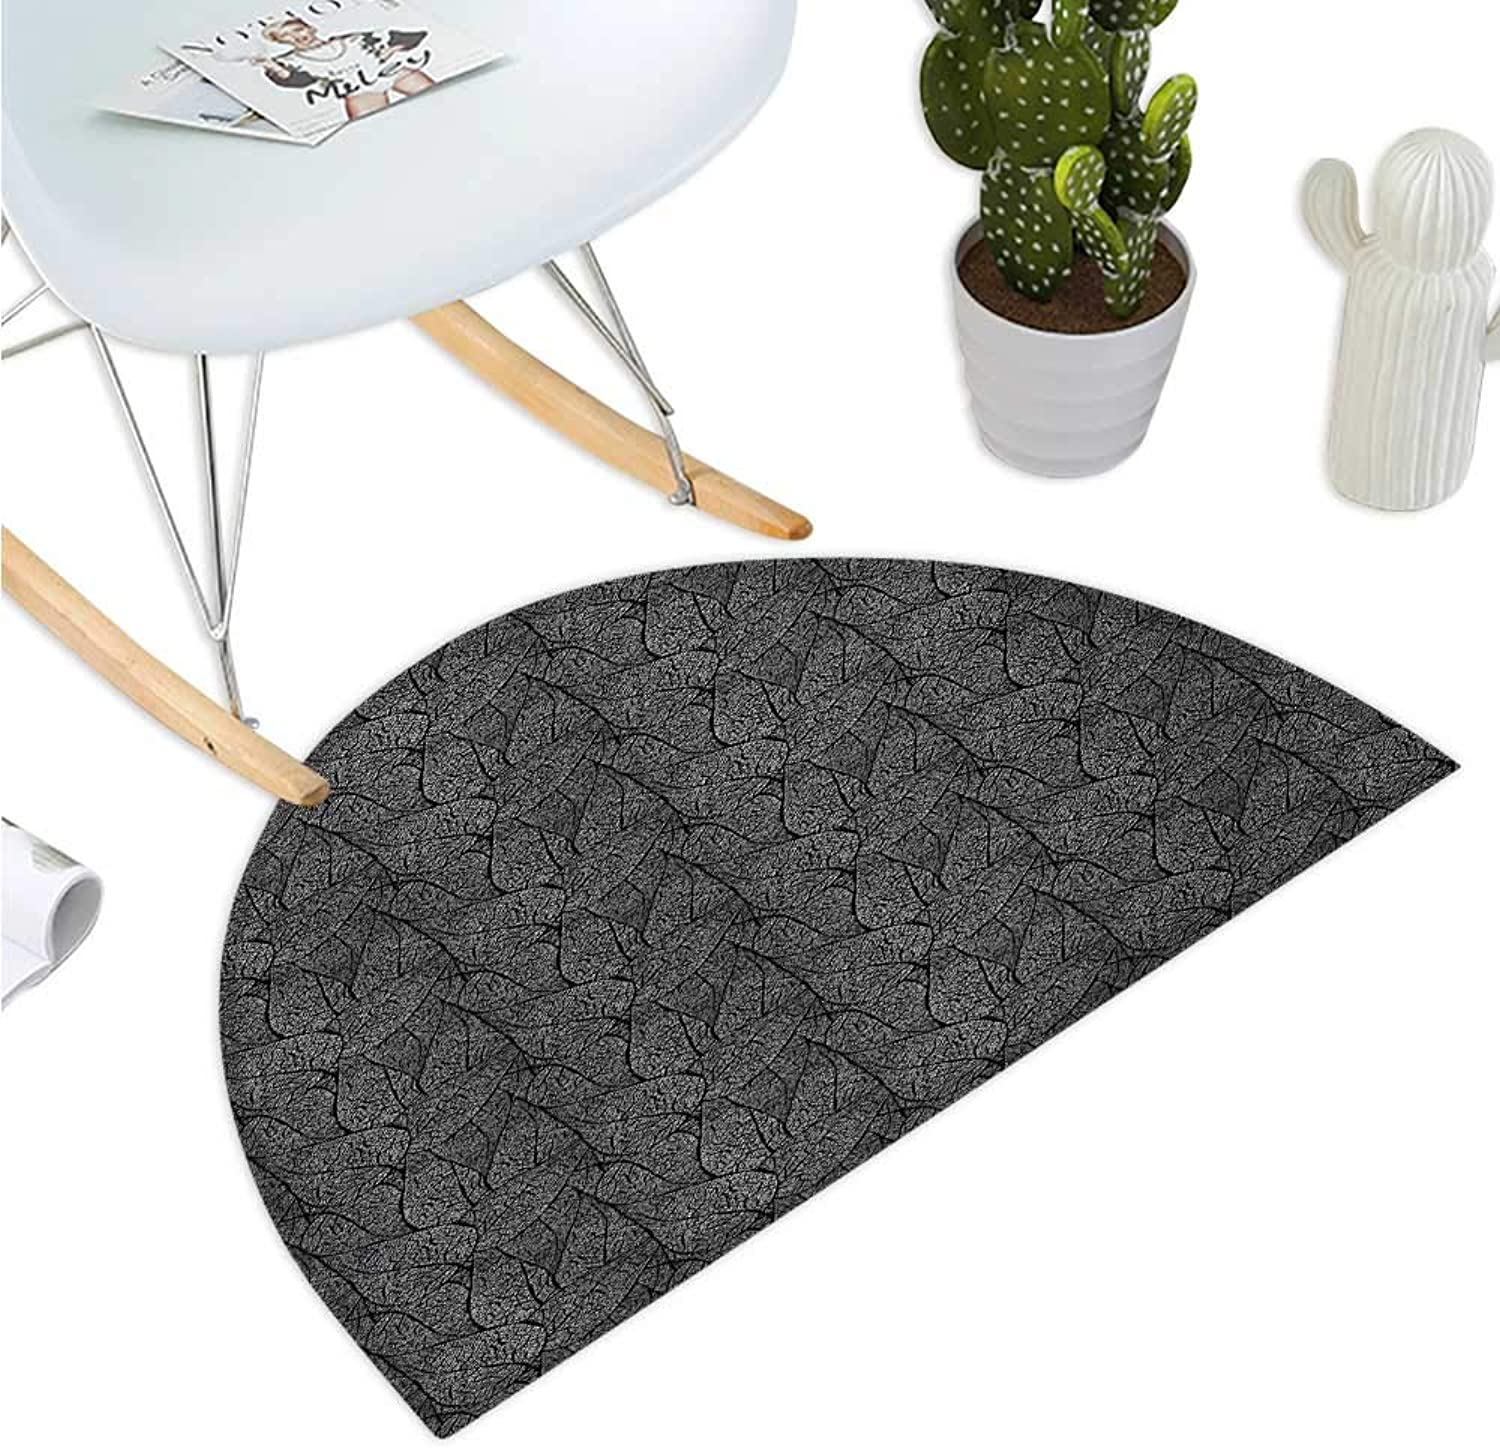 Abstract Semicircular Cushion Monochrome Leaves with a Web of Veins Swirled Design Ornamental Flora Pattern Bathroom Mat H 39.3  xD 59  Black White